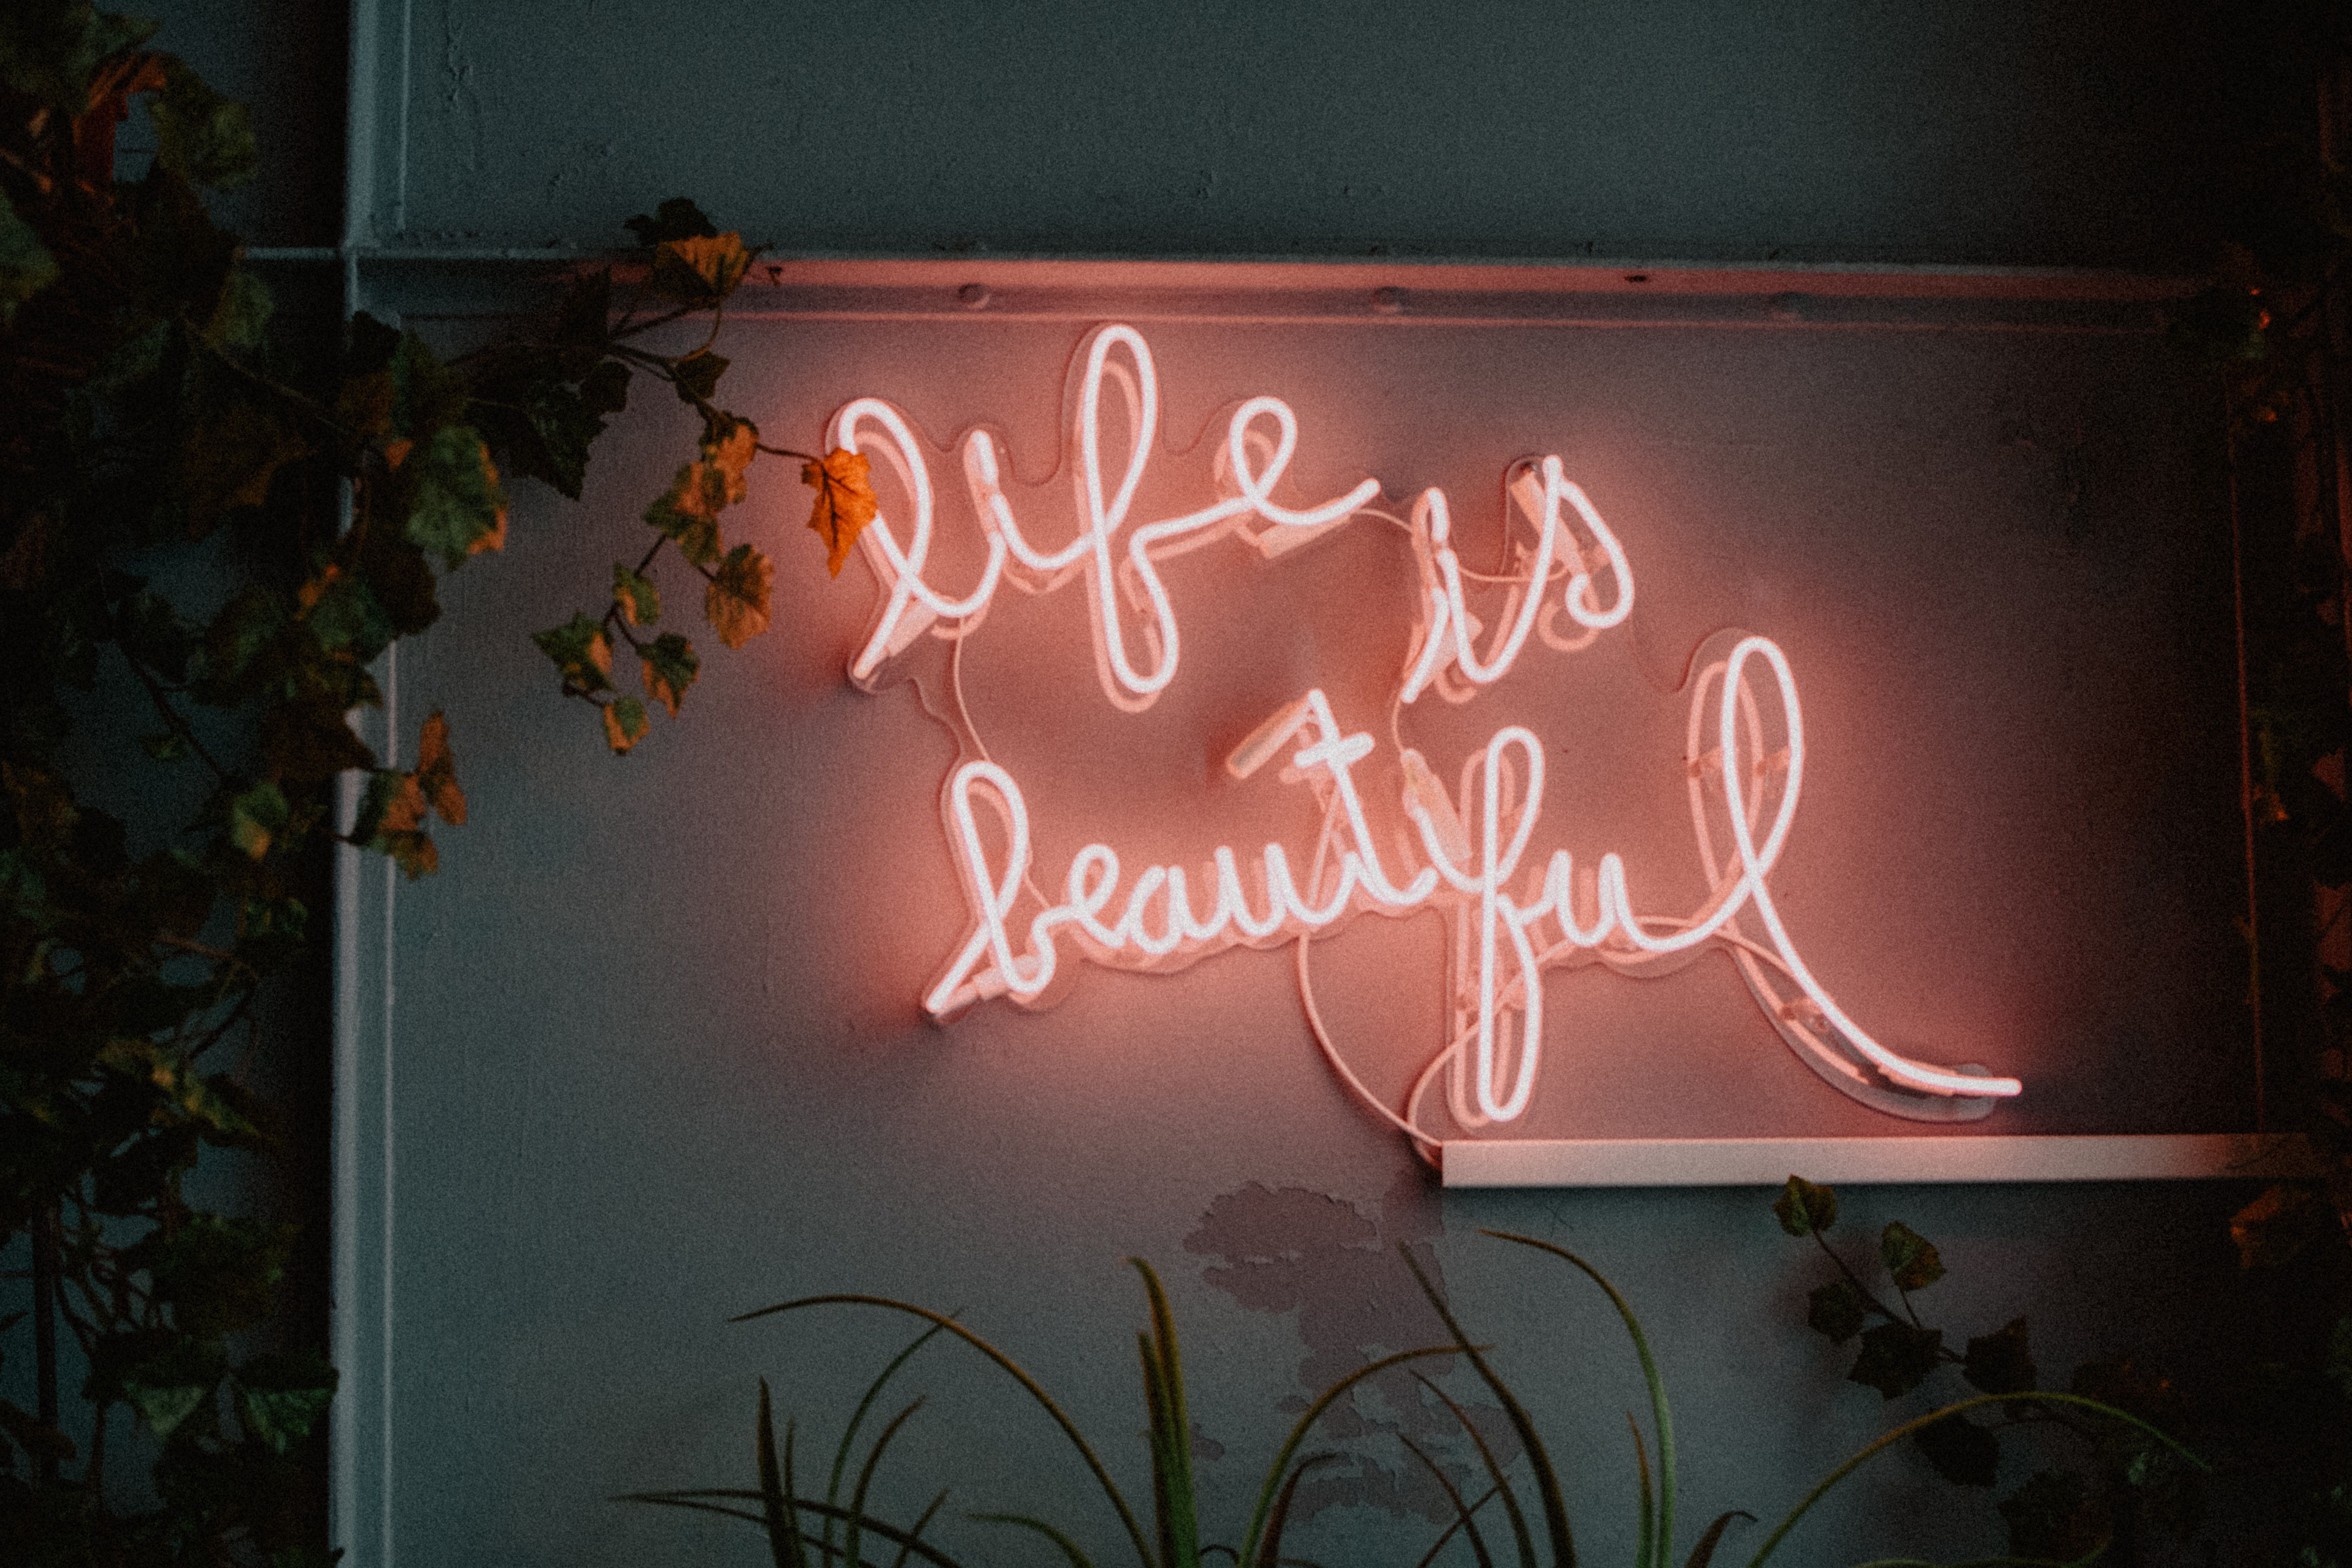 Awesome Wallpaper God Quotes For Girls Photos Neon Quotes Led Signage Neon Signs